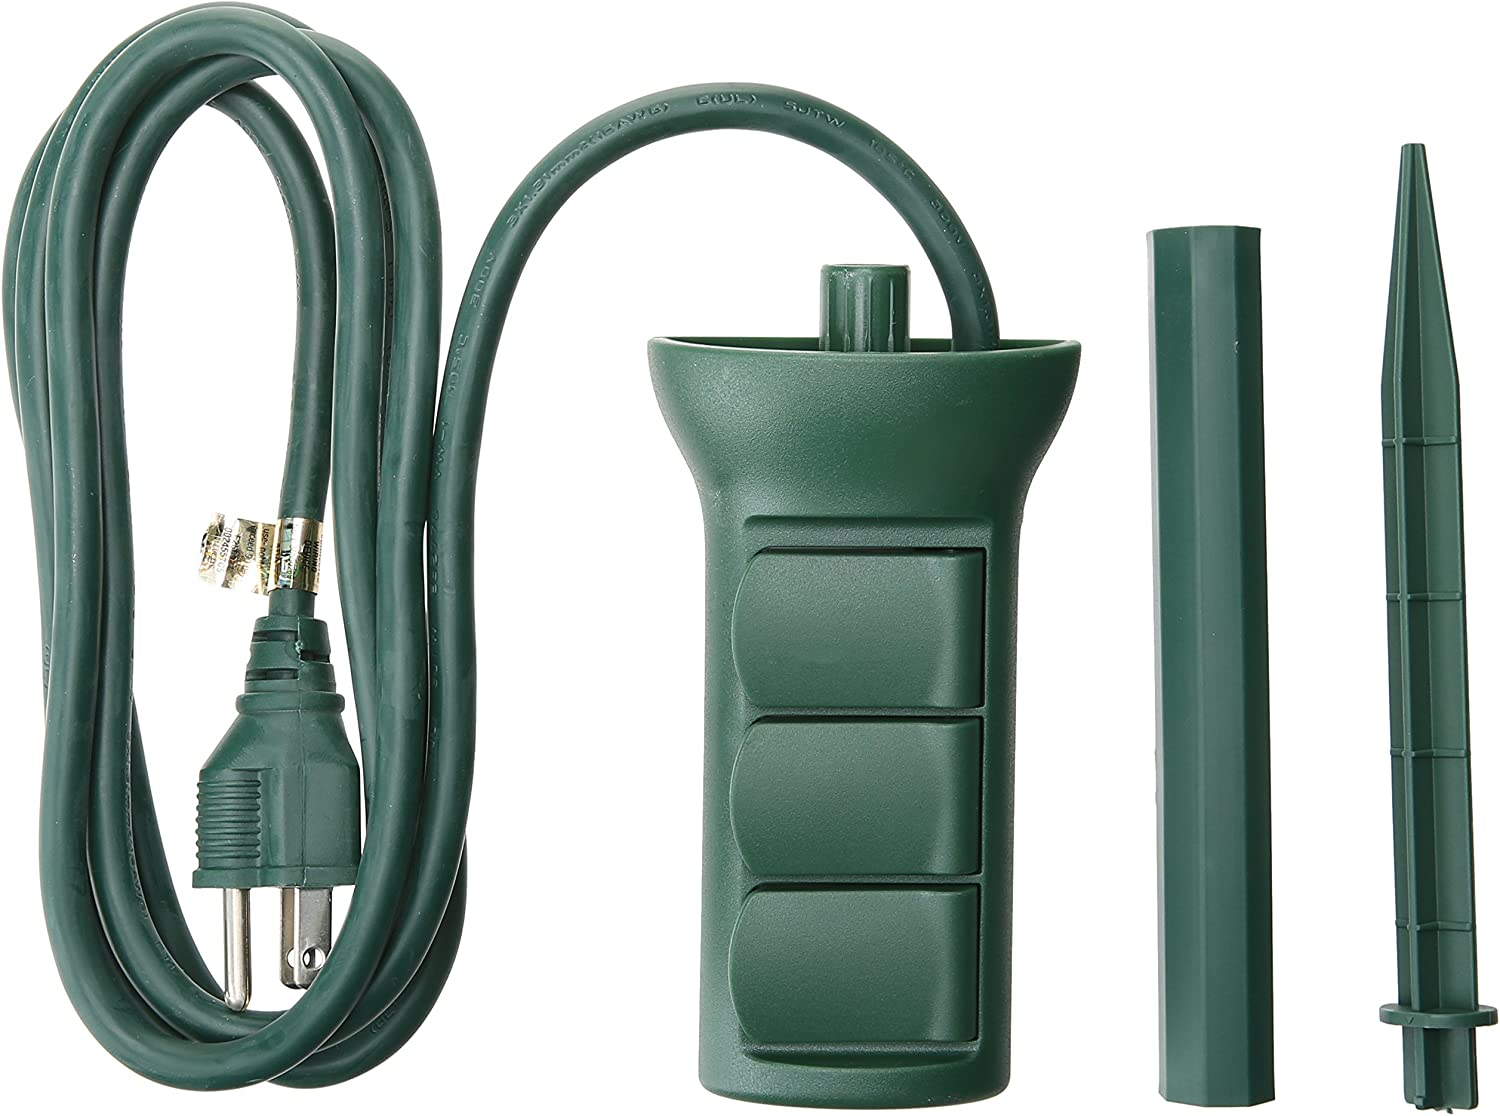 Master Electrician SP-049 3 outlet Power Stake, Green